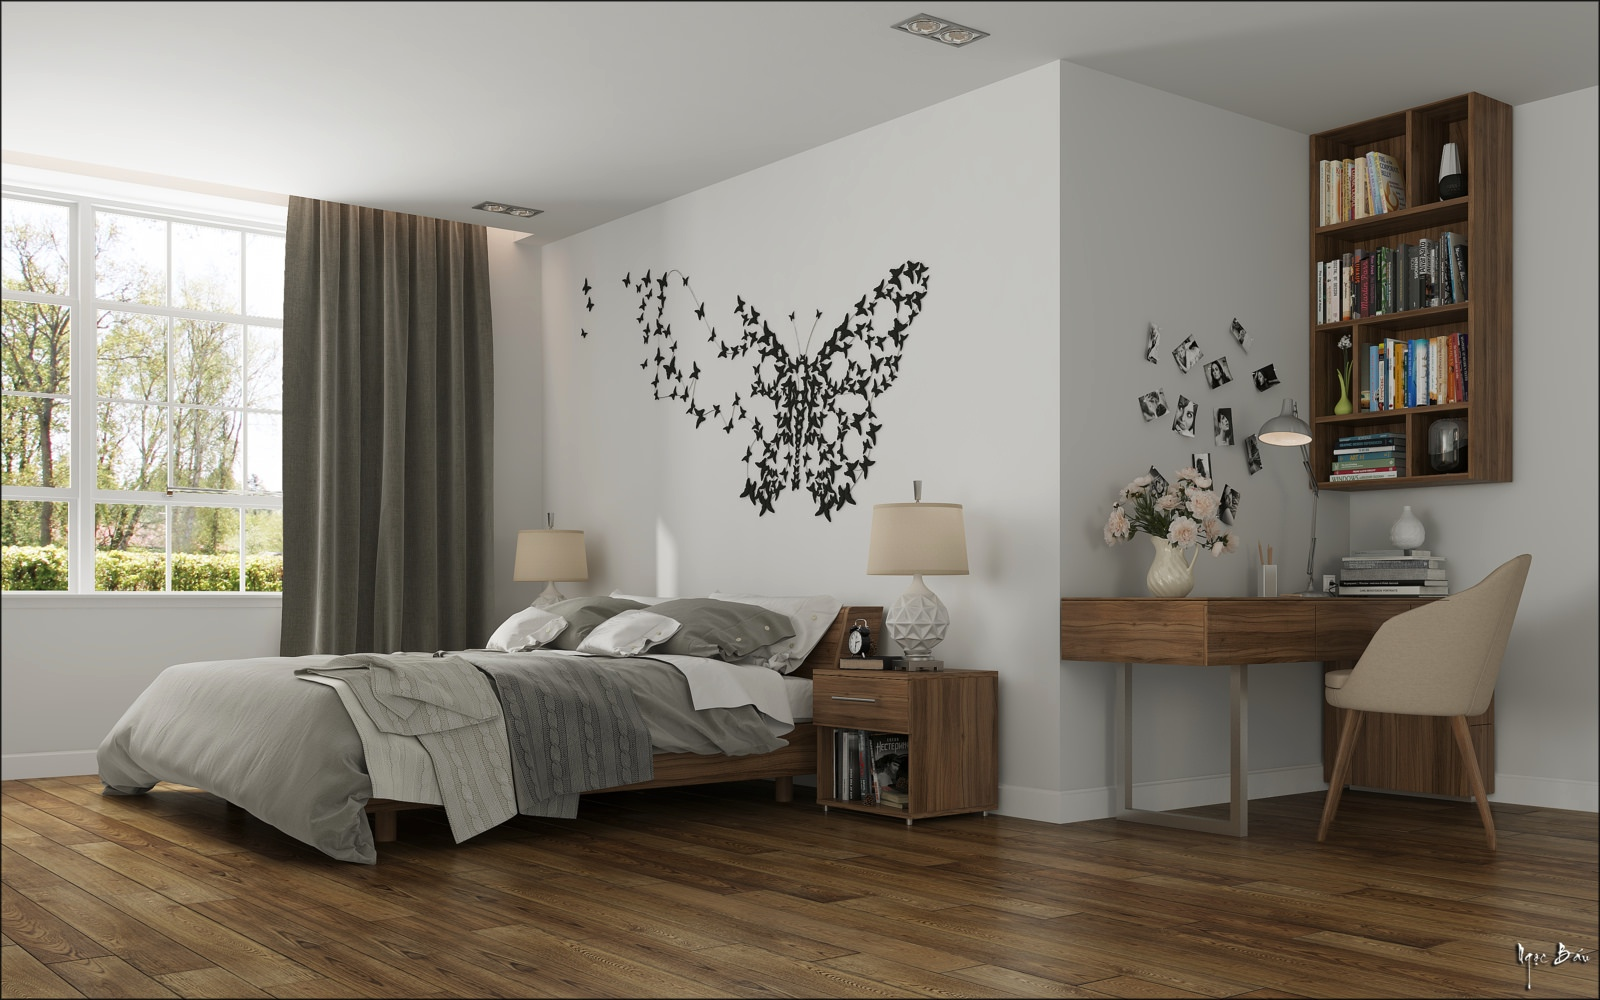 Bedroom butterfly wall art interior design ideas for Bois decoration murale